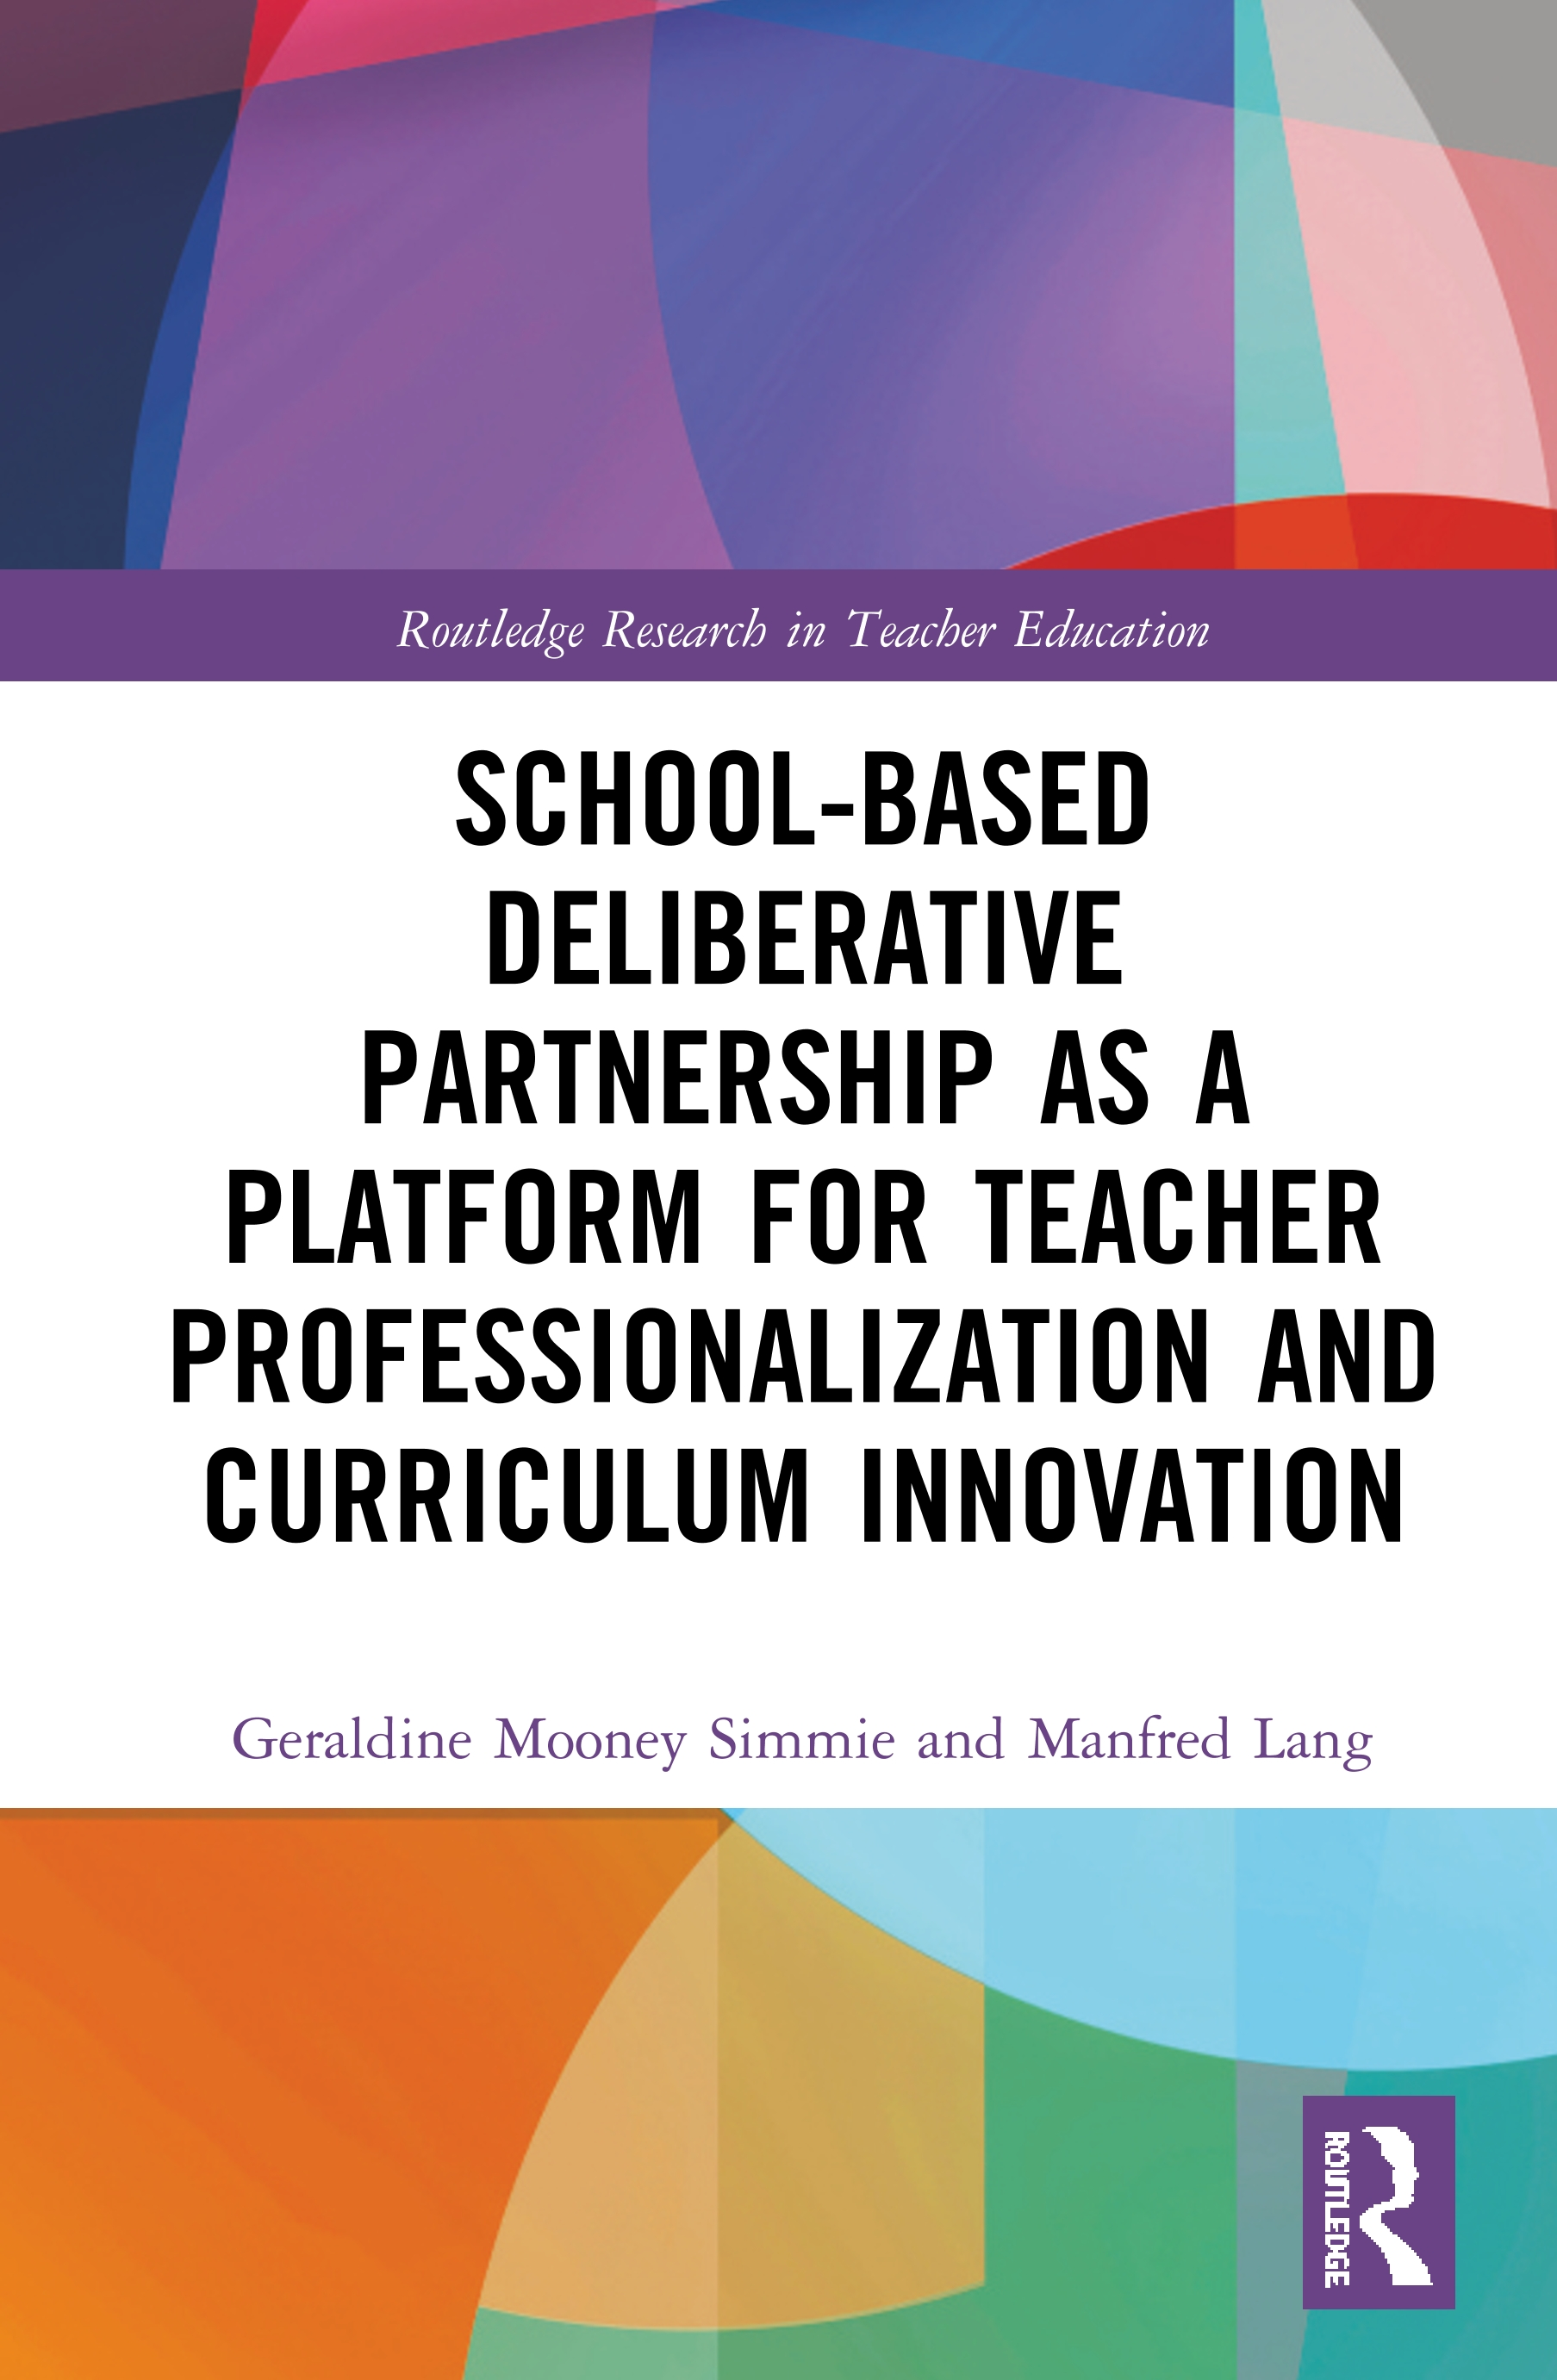 School-Based Deliberative Partnership as a Platform for Teacher Professionalization and Curriculum Innovation book cover